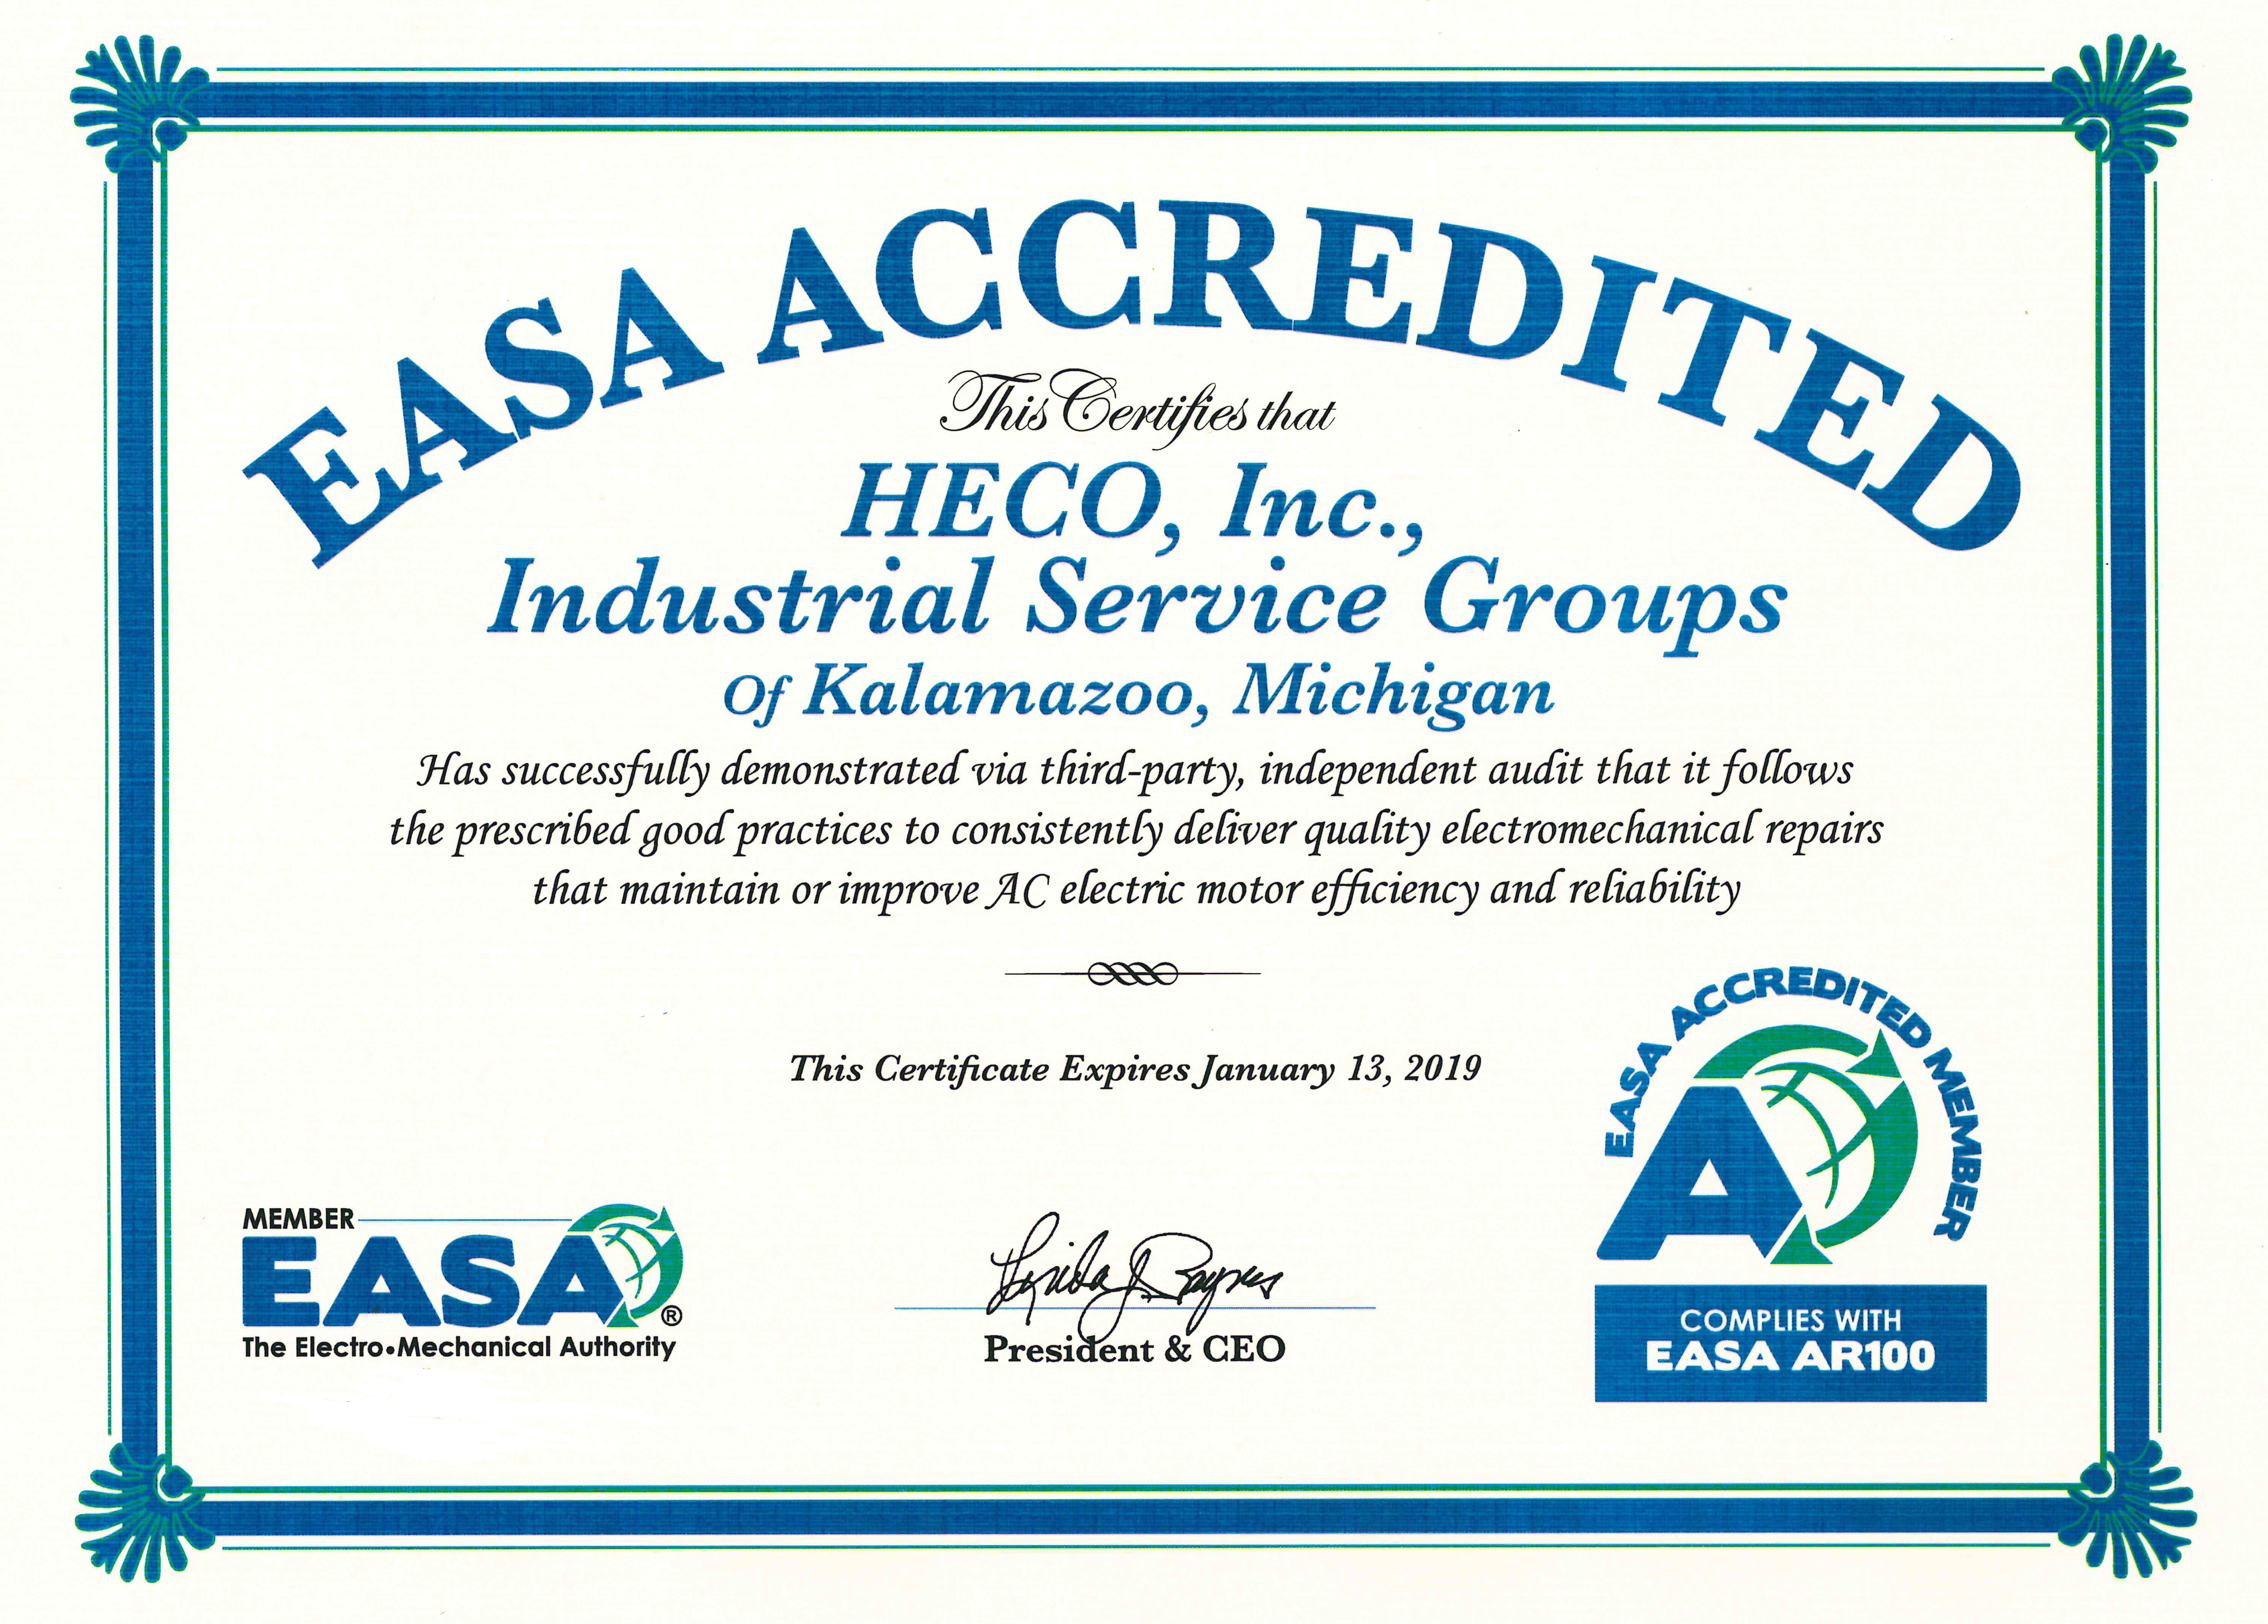 HECO_EASA_ACCREDITED_CERT_2018